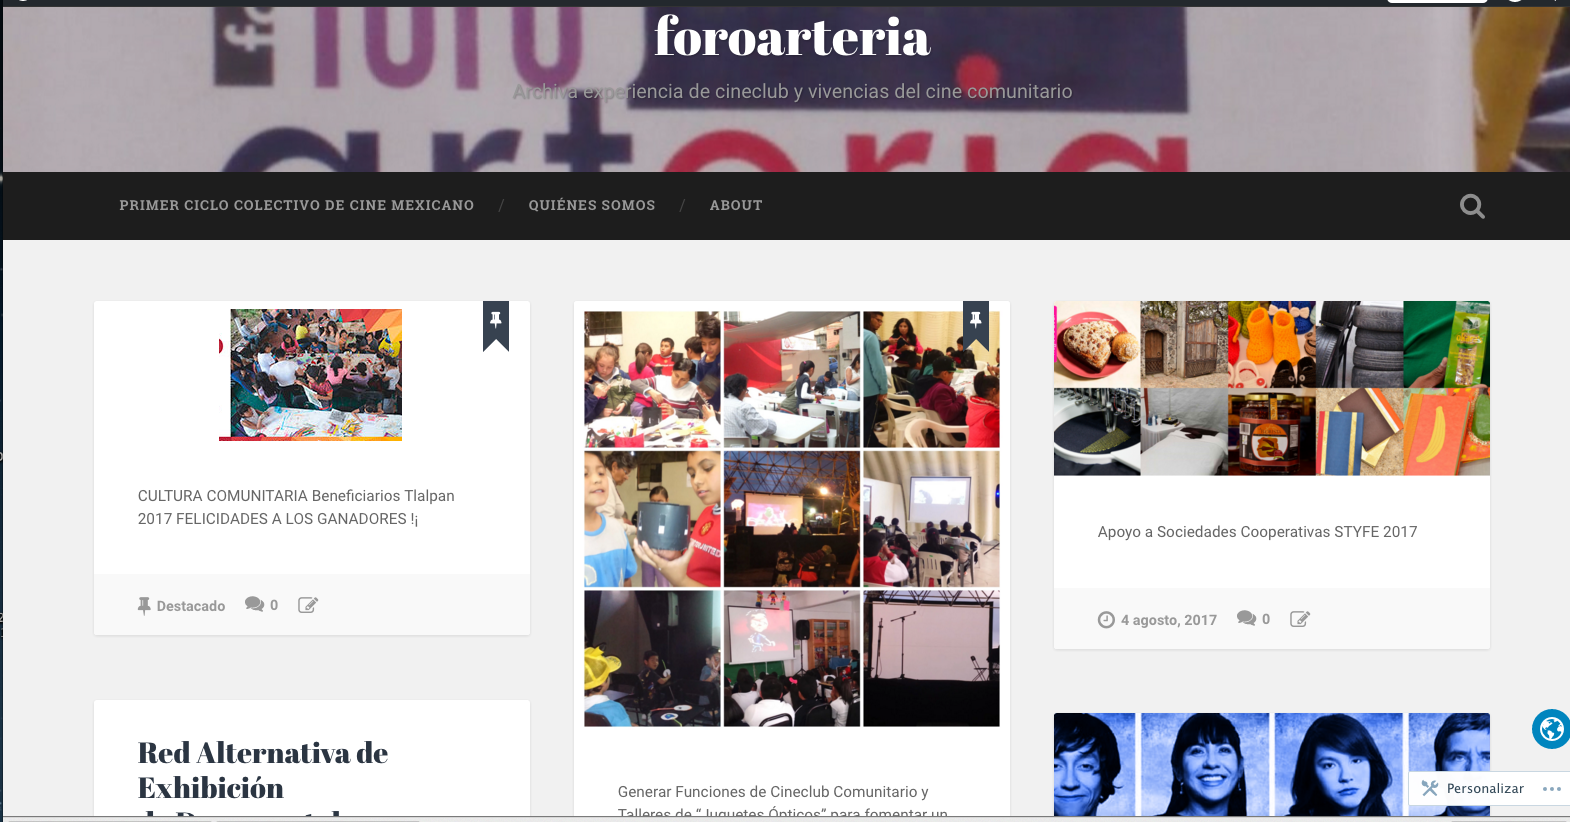 foro arteria Wordpress